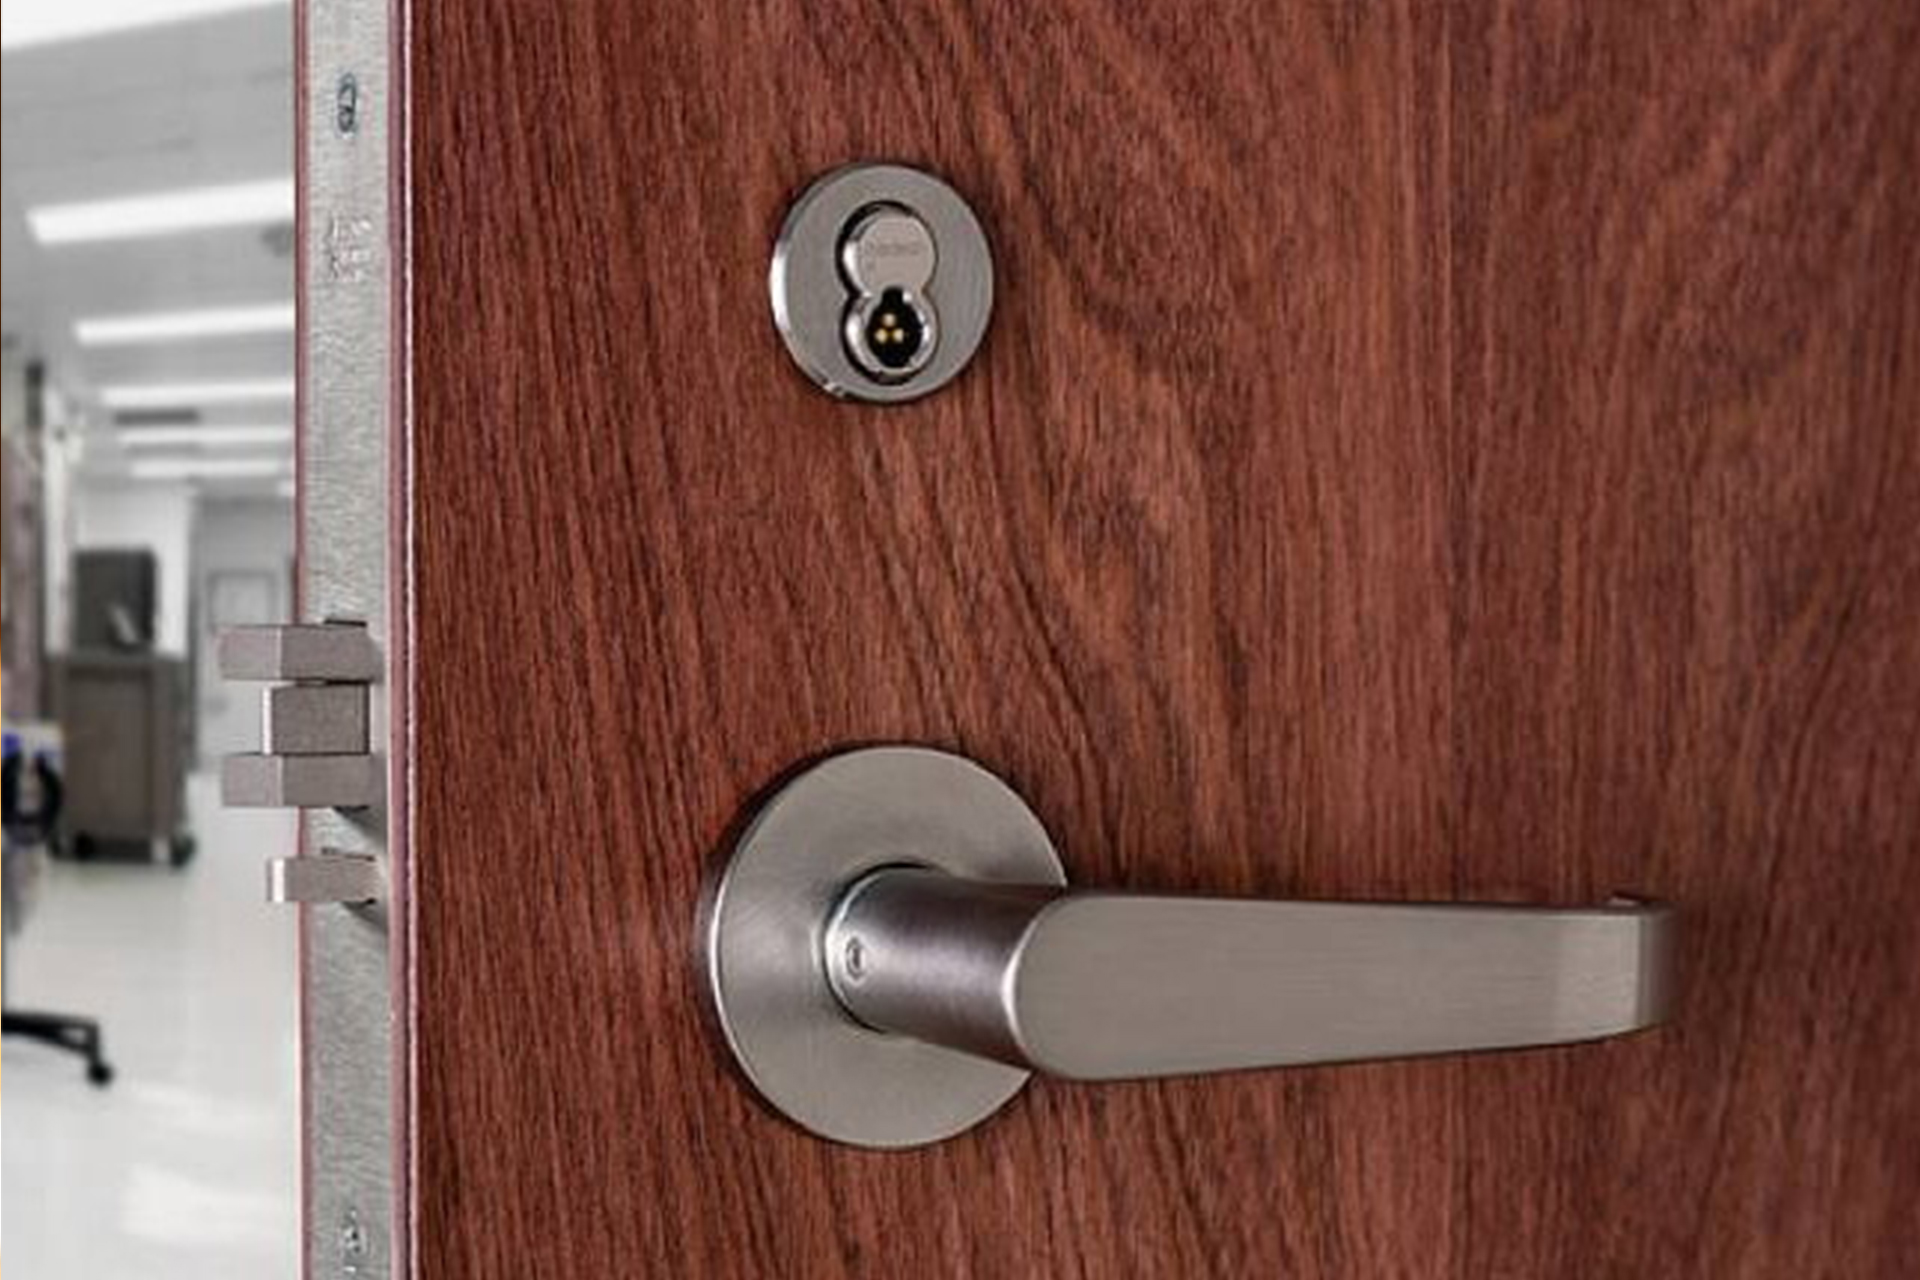 commerical locksmith los angeles, 24 hour locksmith los angeles, los angeles locksmiths, 24 hours locksmiths, emergency locksmith service los angeles